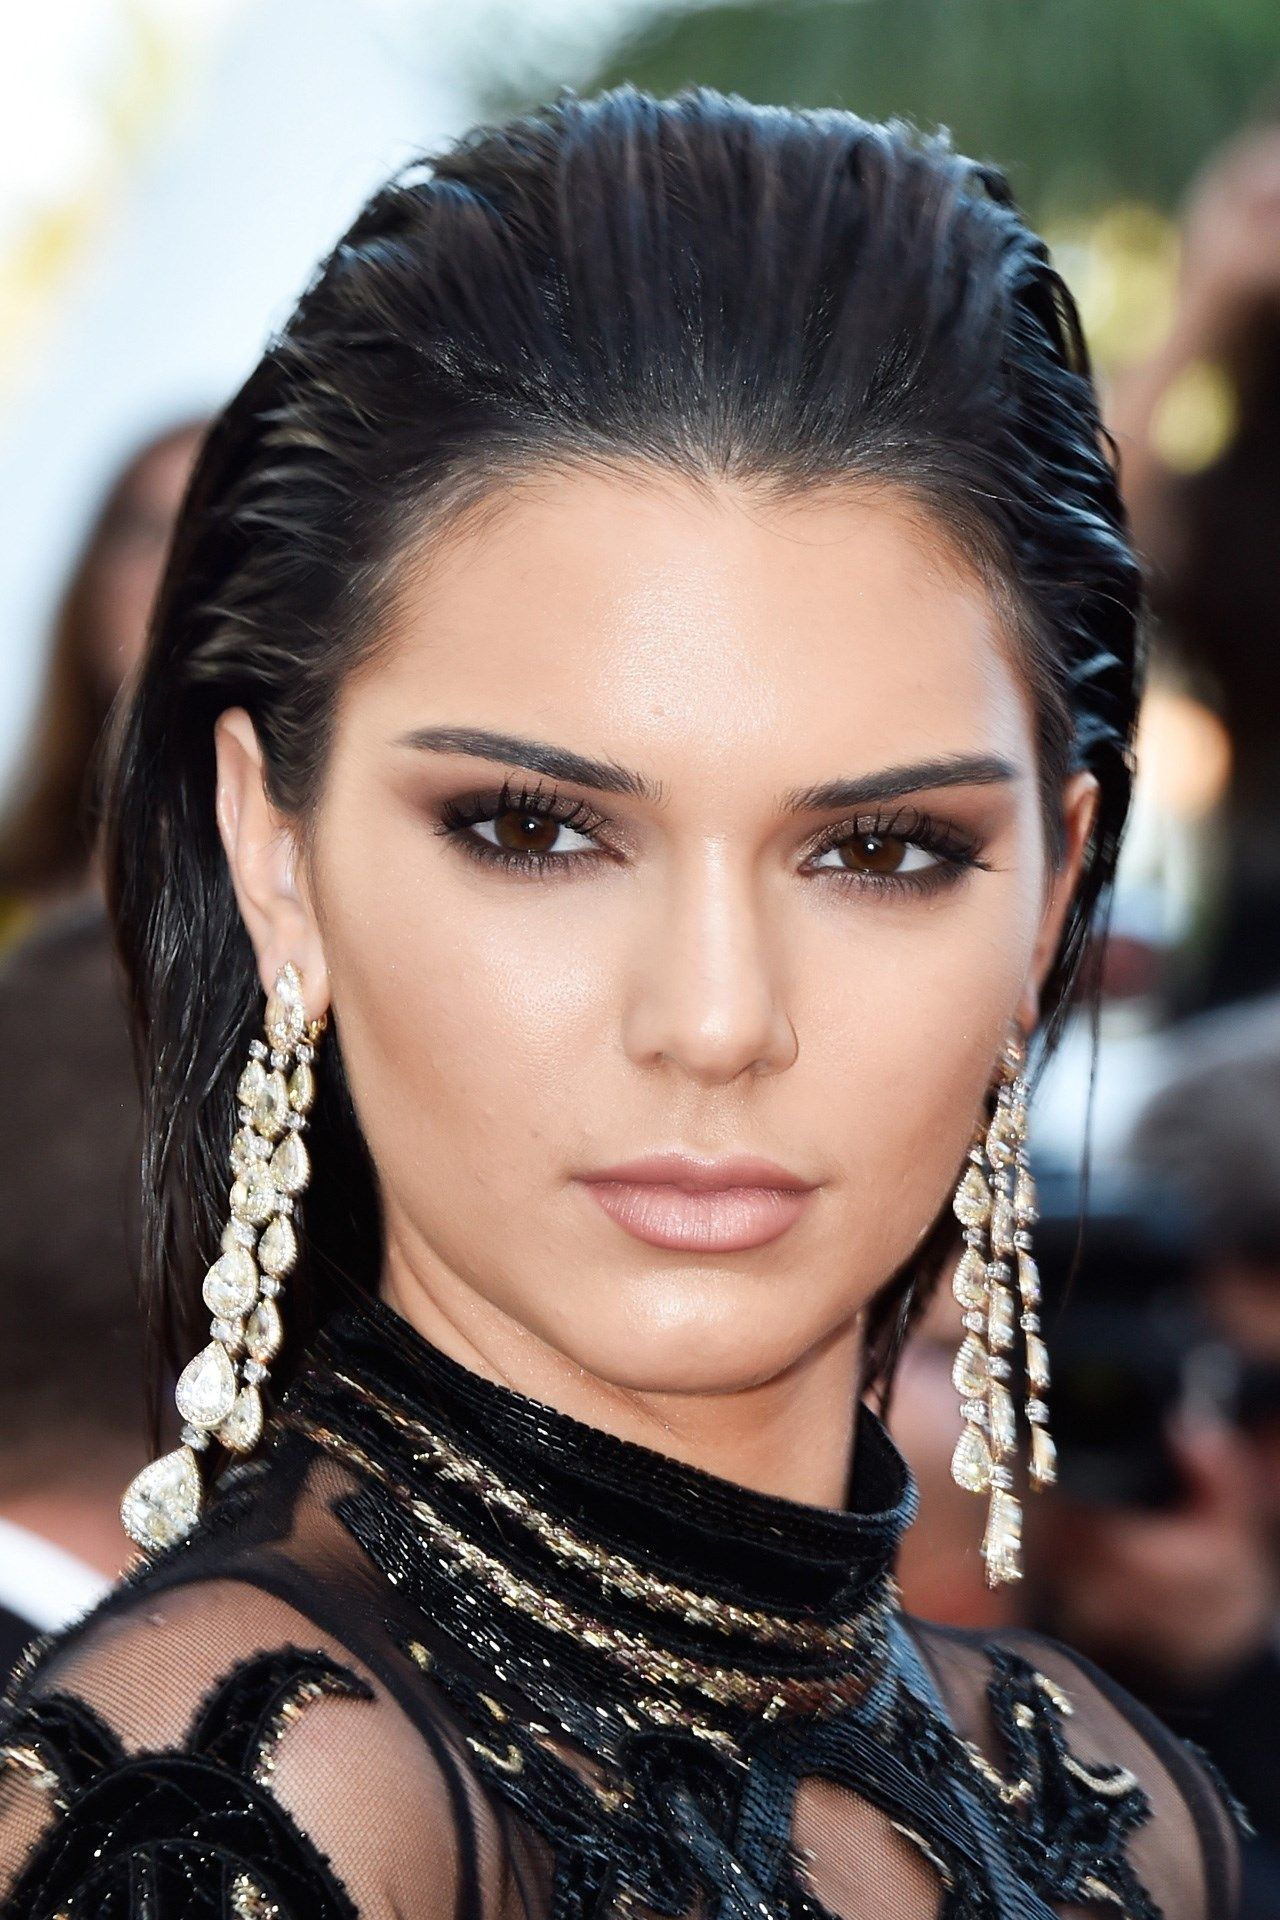 Kendall Jenner paired metallic smoky eyes with sculpted skin on the red carpet, whilst her hair was swept back from her face in a wet-look style.